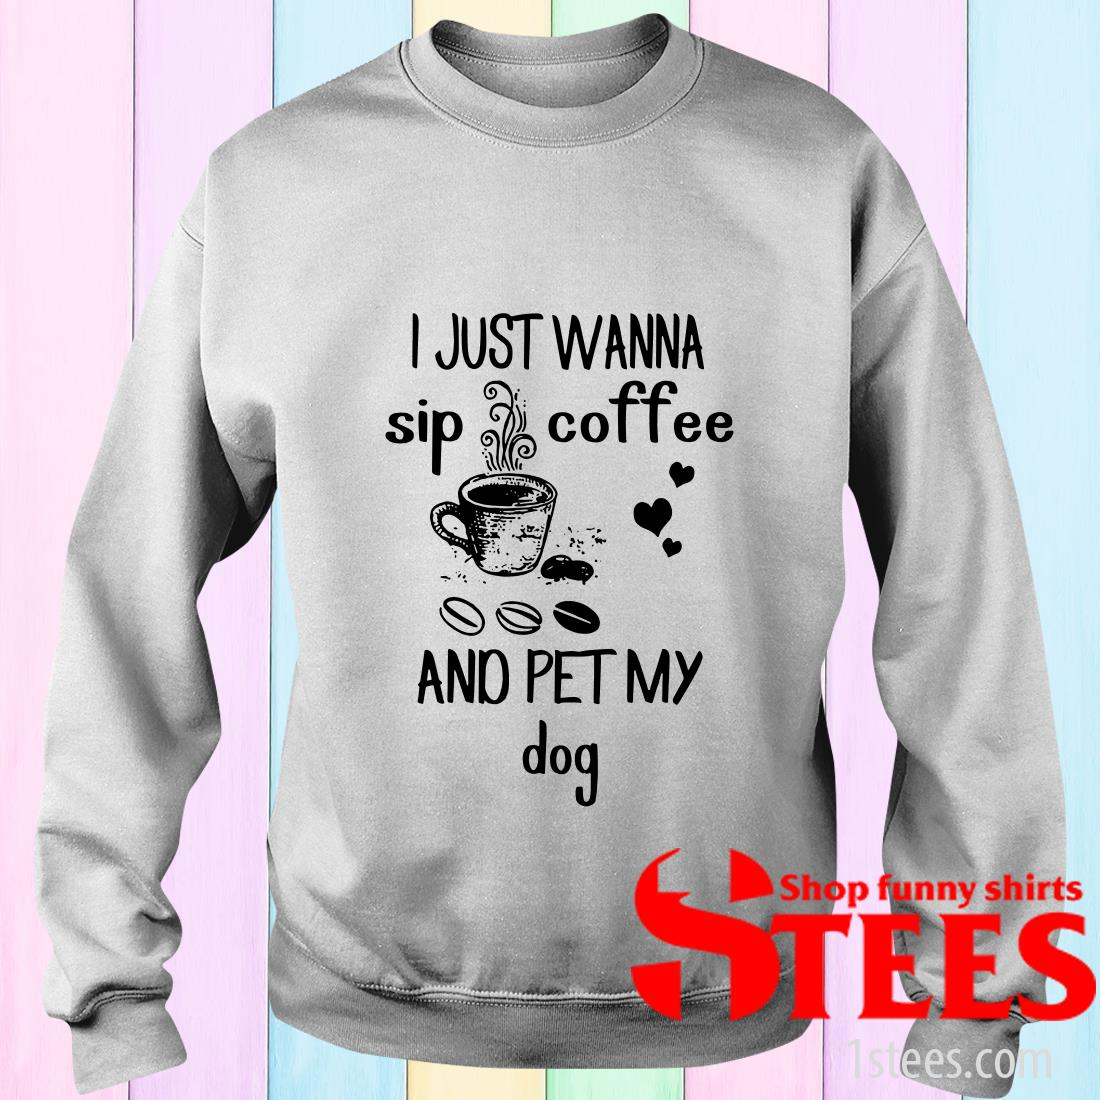 I Just Wanna Sip Coffee And Pet My Dog Shirt